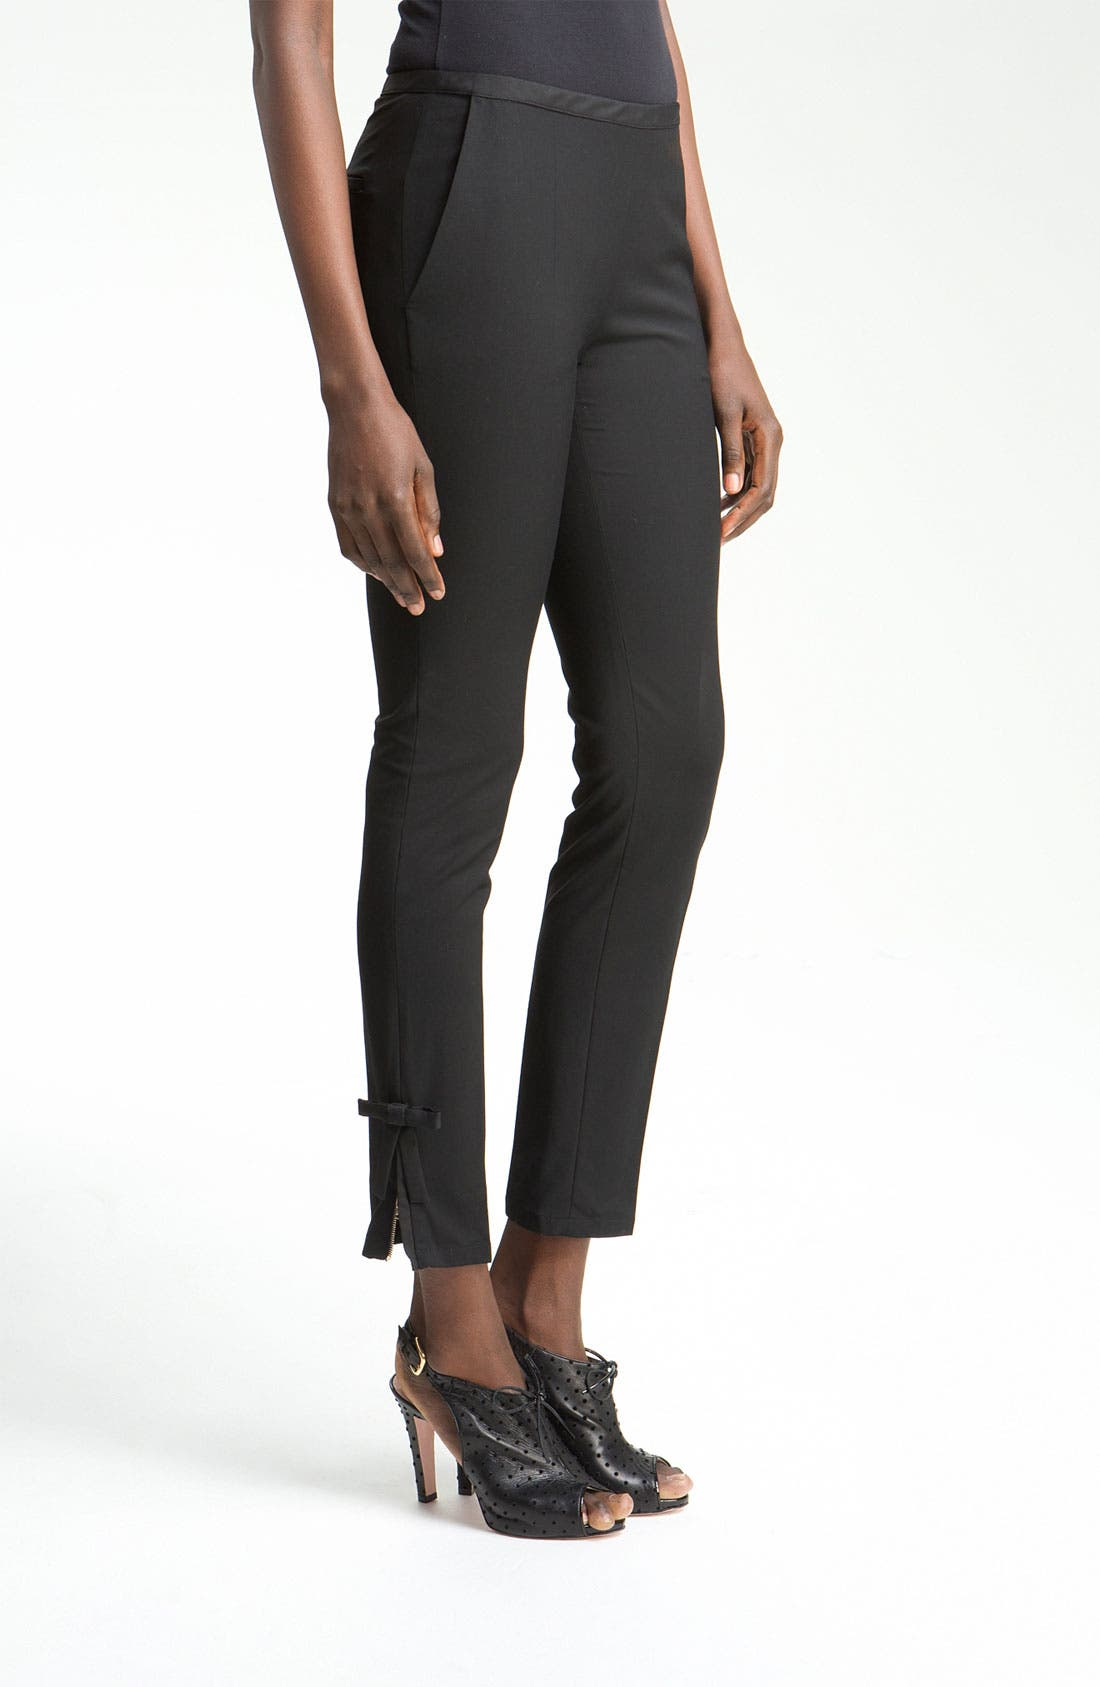 Alternate Image 2  - RED Valentino Slim Ankle Length Pants